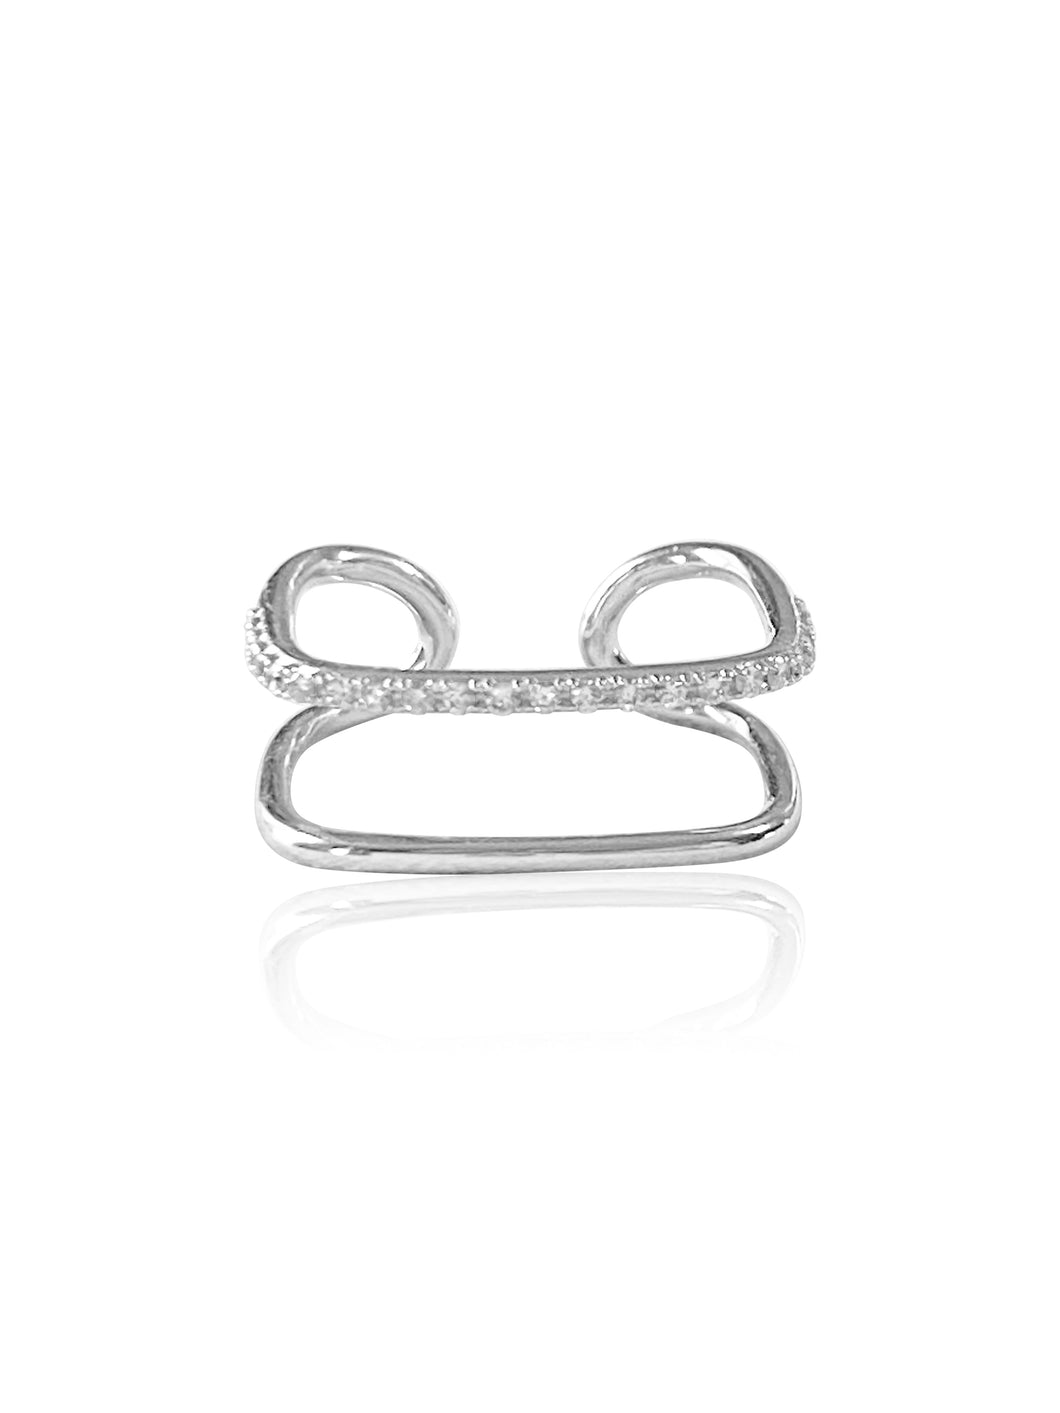 14k Diamond Double Band Adjustable Square Ring